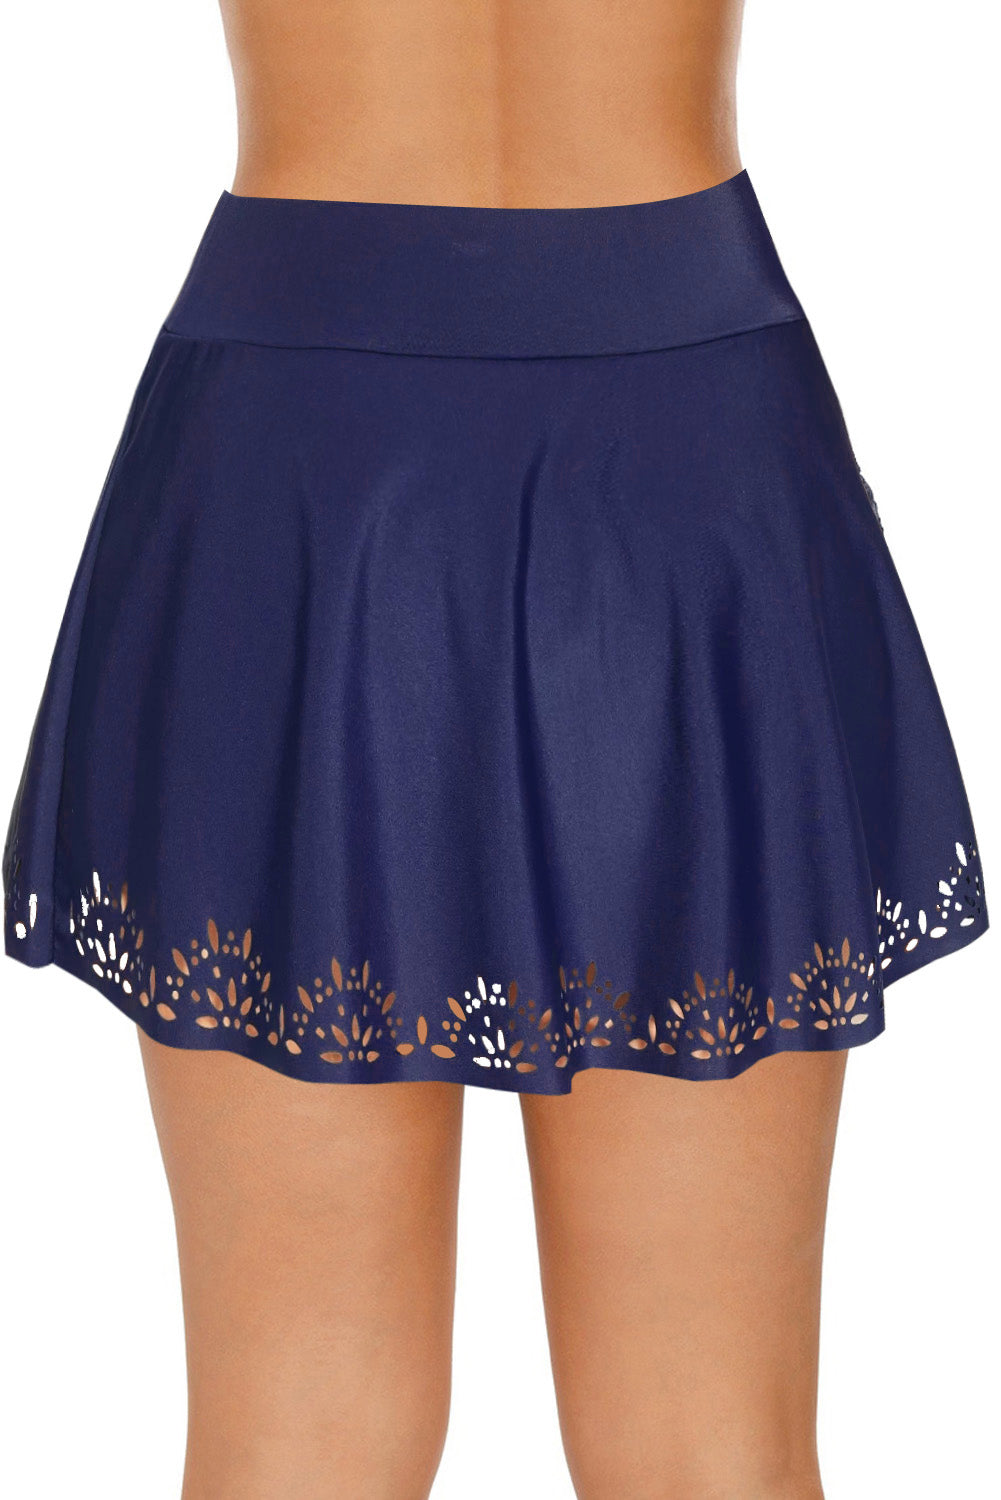 Blue Women's Laser Cut Swim Skirtini